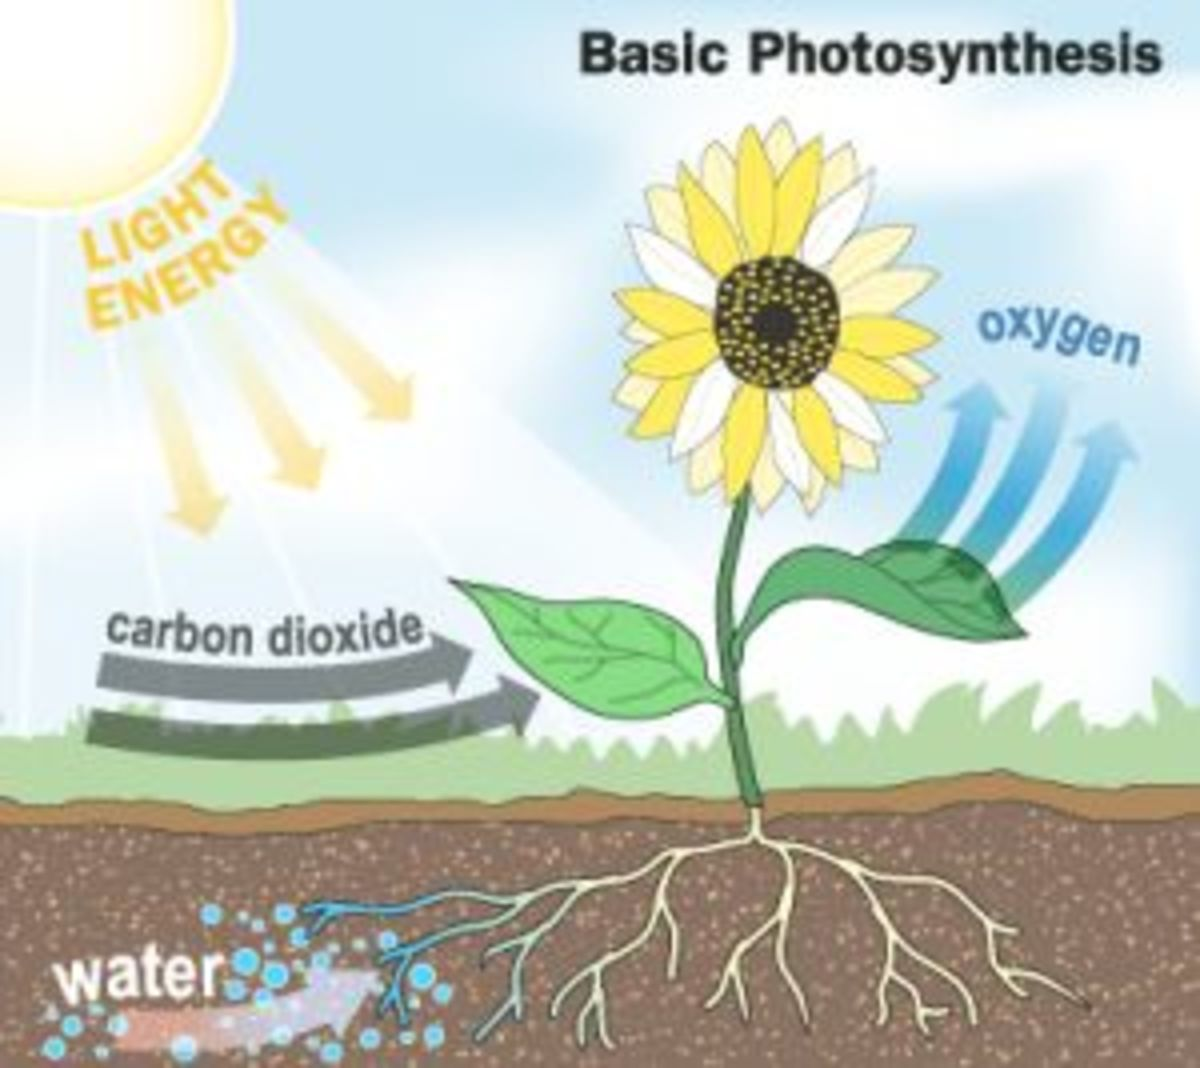 a-simple-diagram-of-photosynthesis